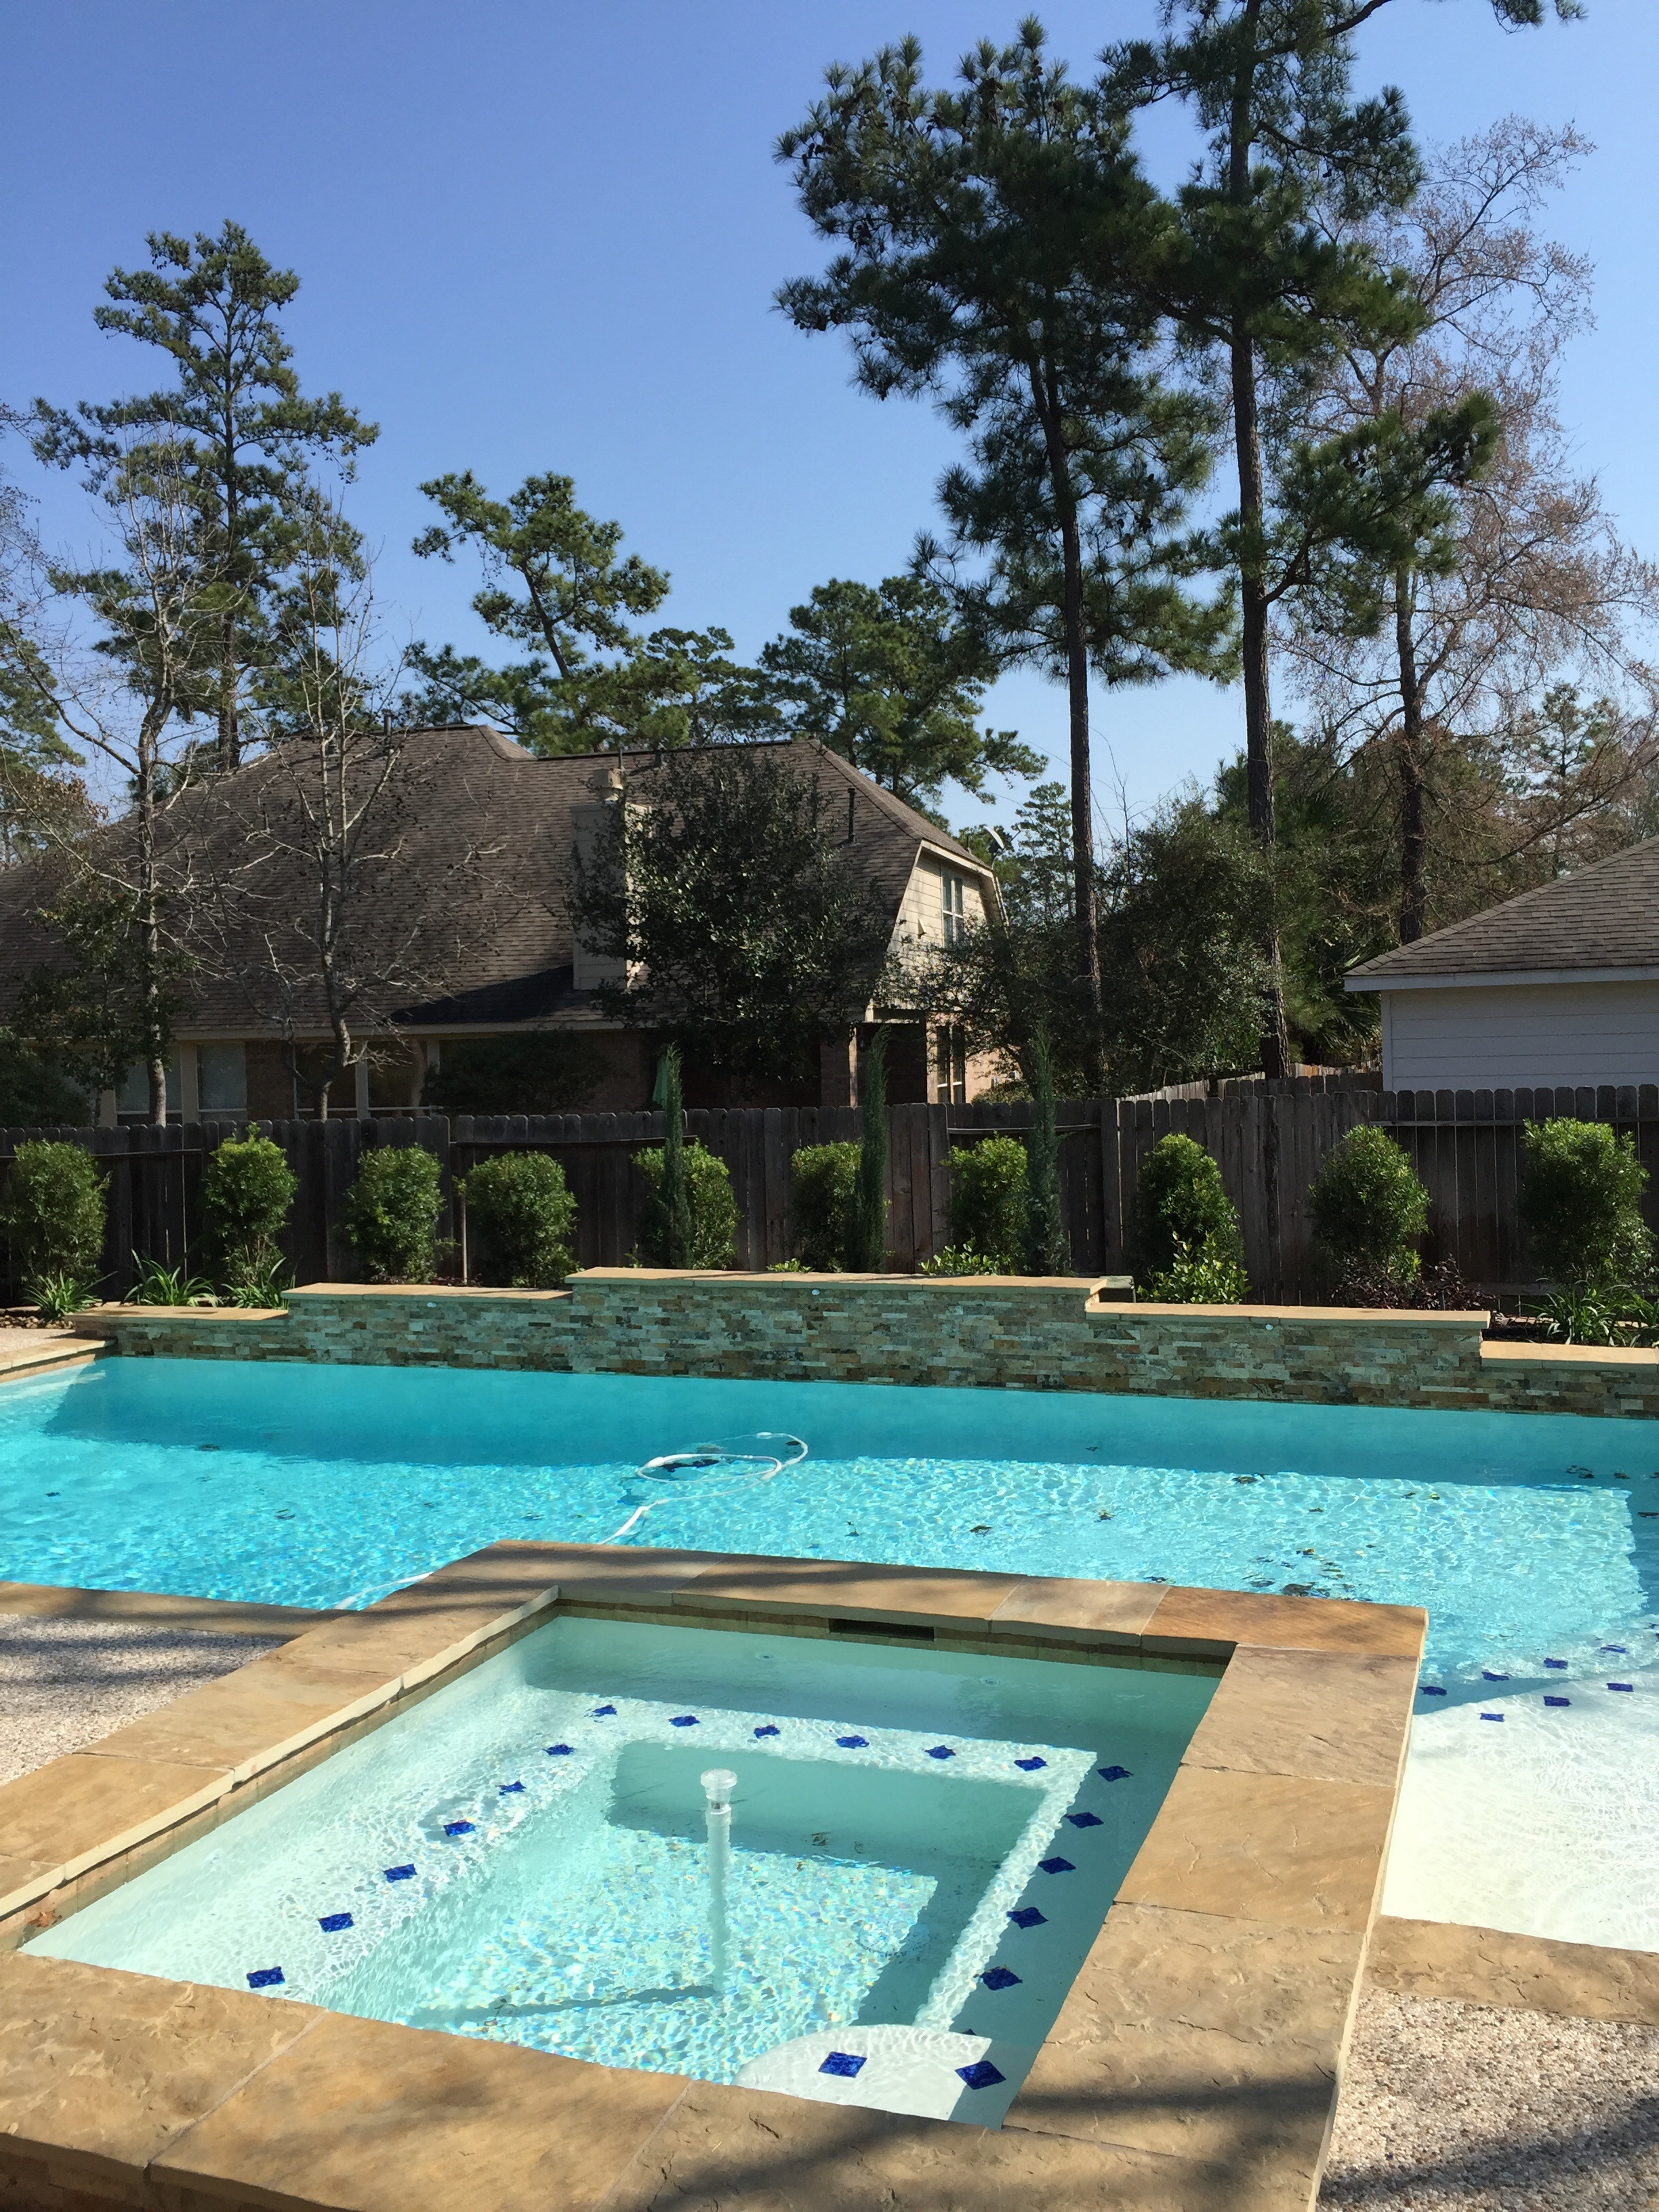 Pool Landscaping With Retaining Wall